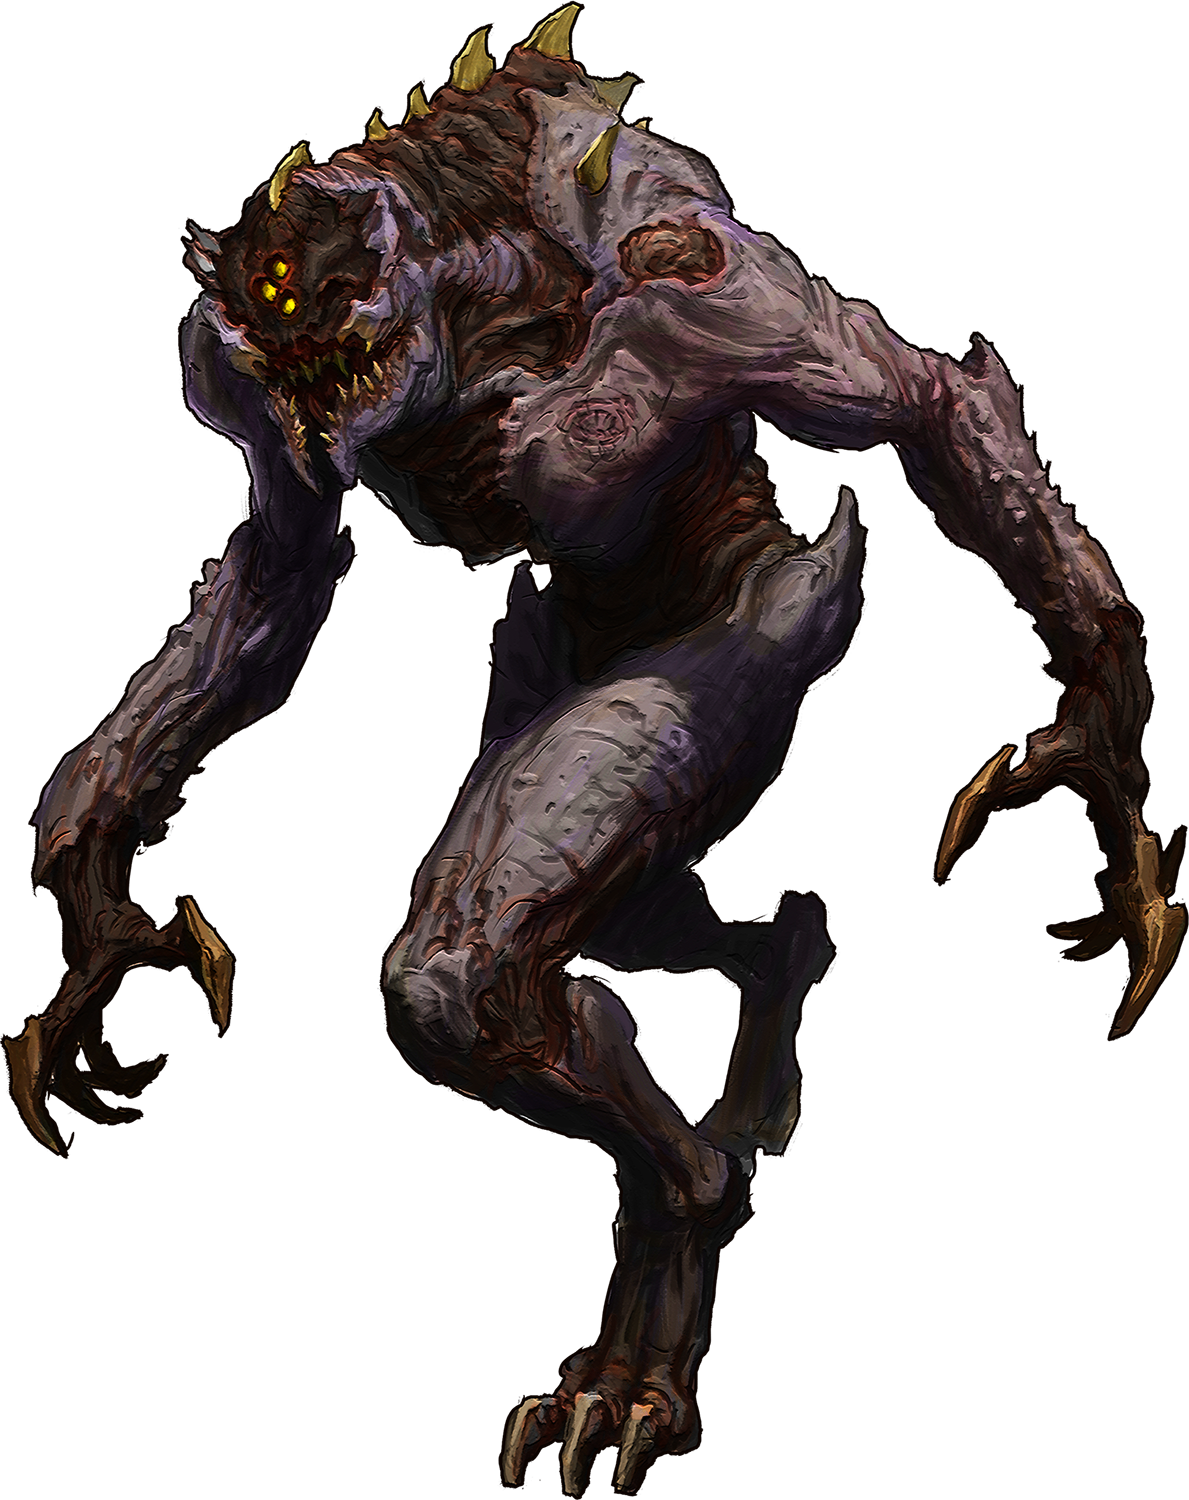 Doom demon png, Picture #566838 doom demon png